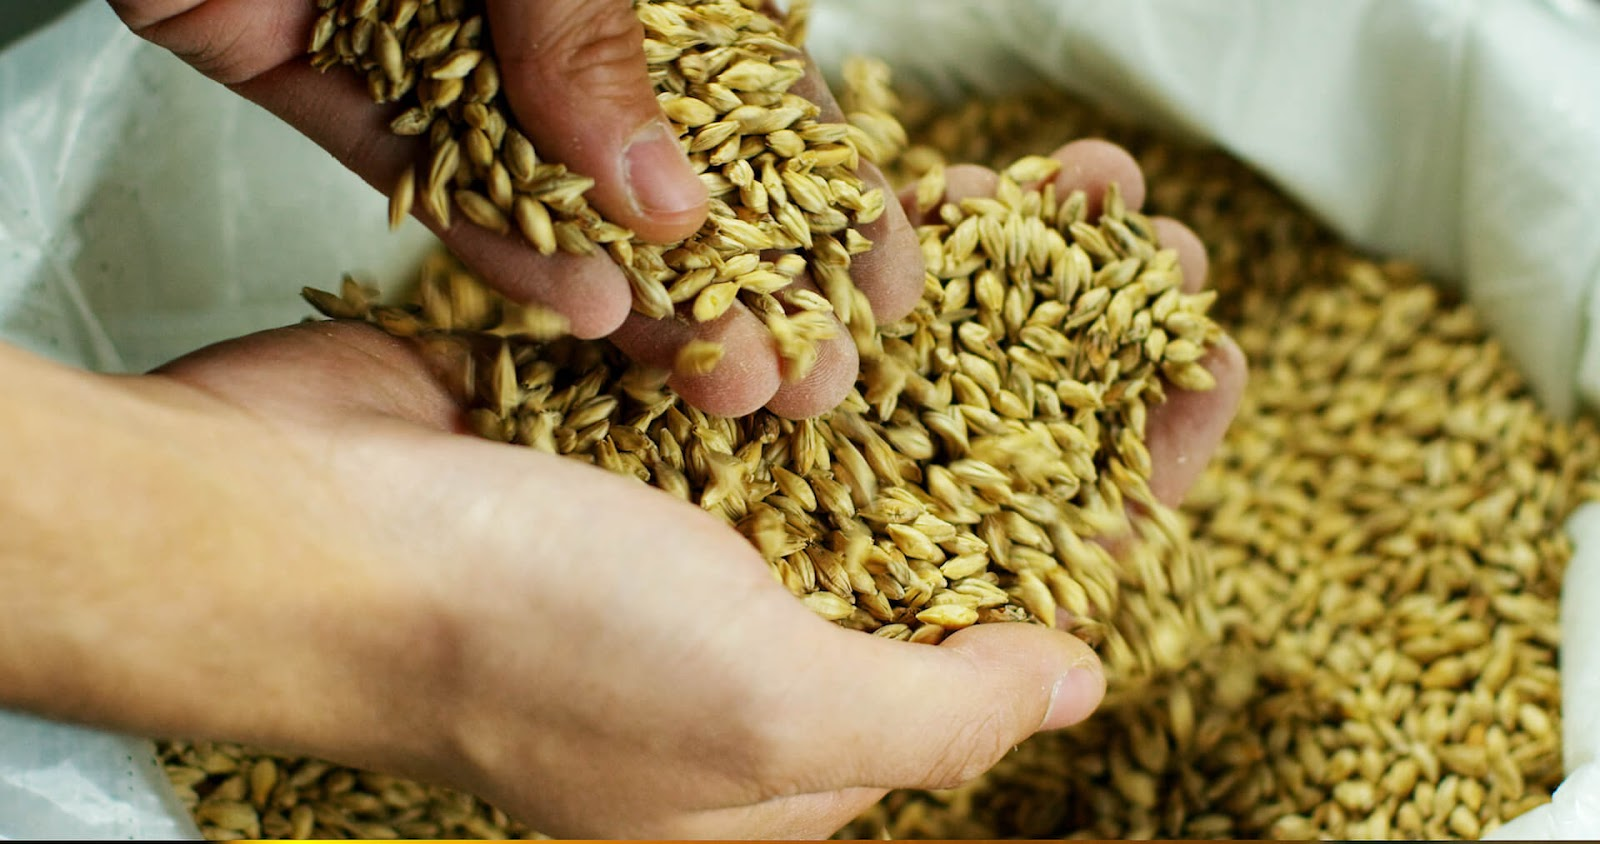 Hand holding malted barley in their hands, getting ready to make homemade whiskey